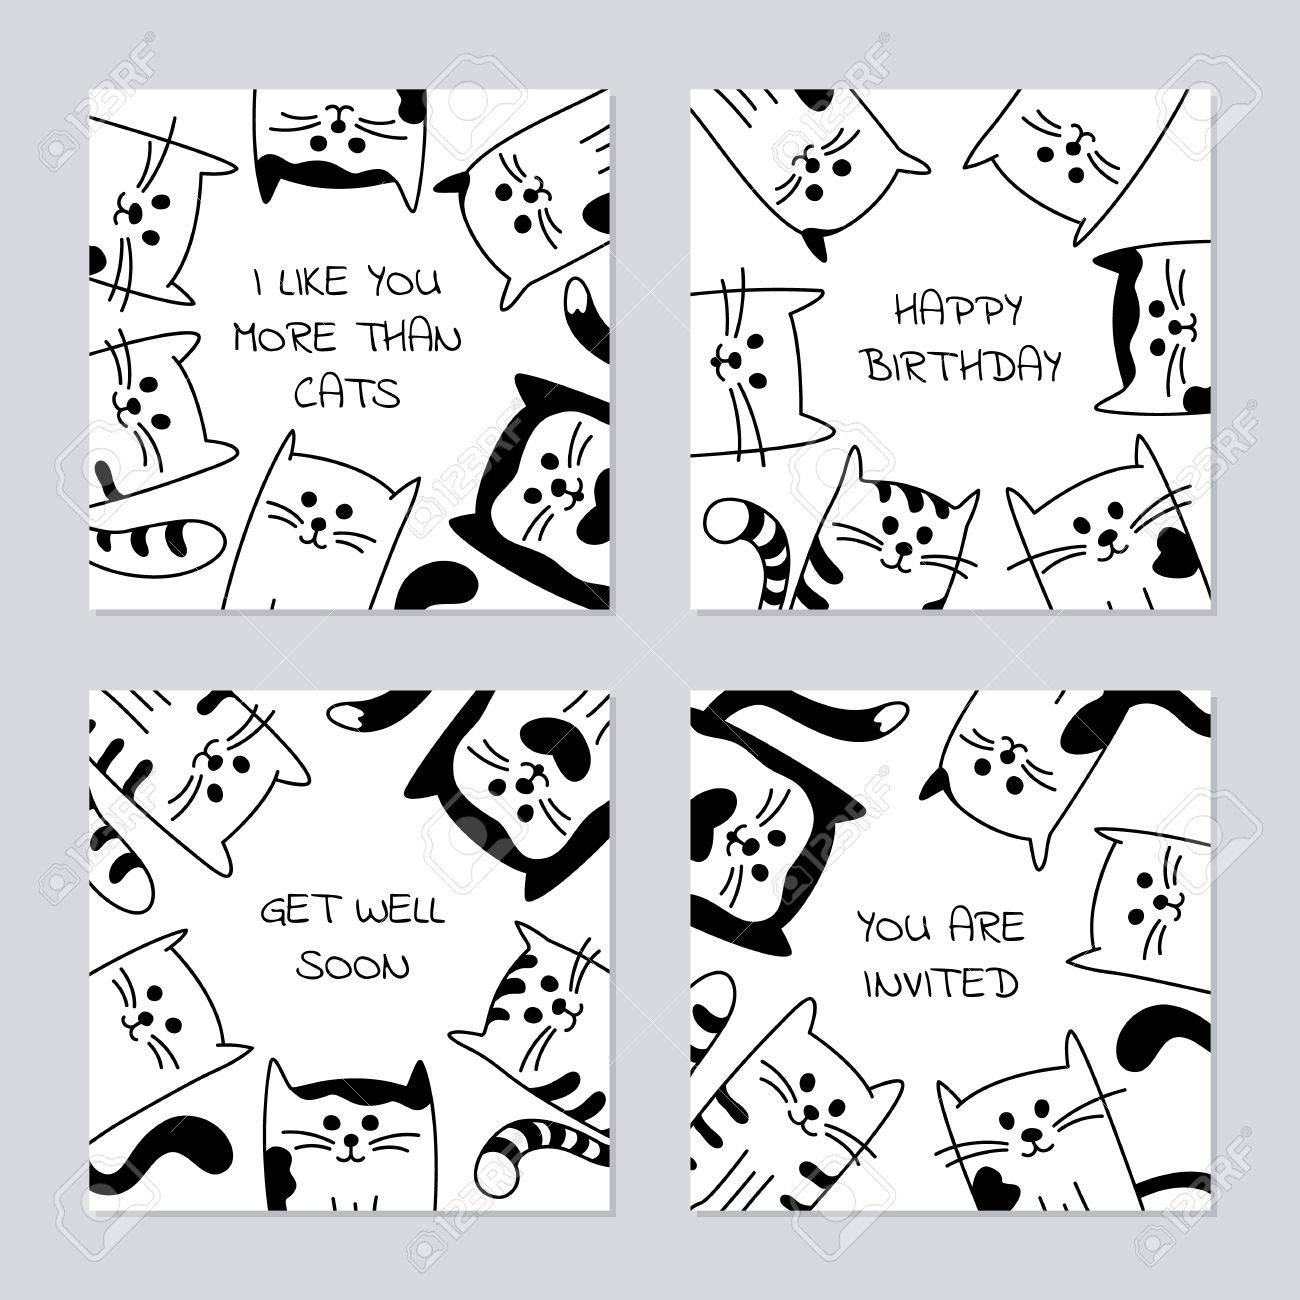 Set Of 4 Backgrounds With Hand Drawn Cartoon Black And White